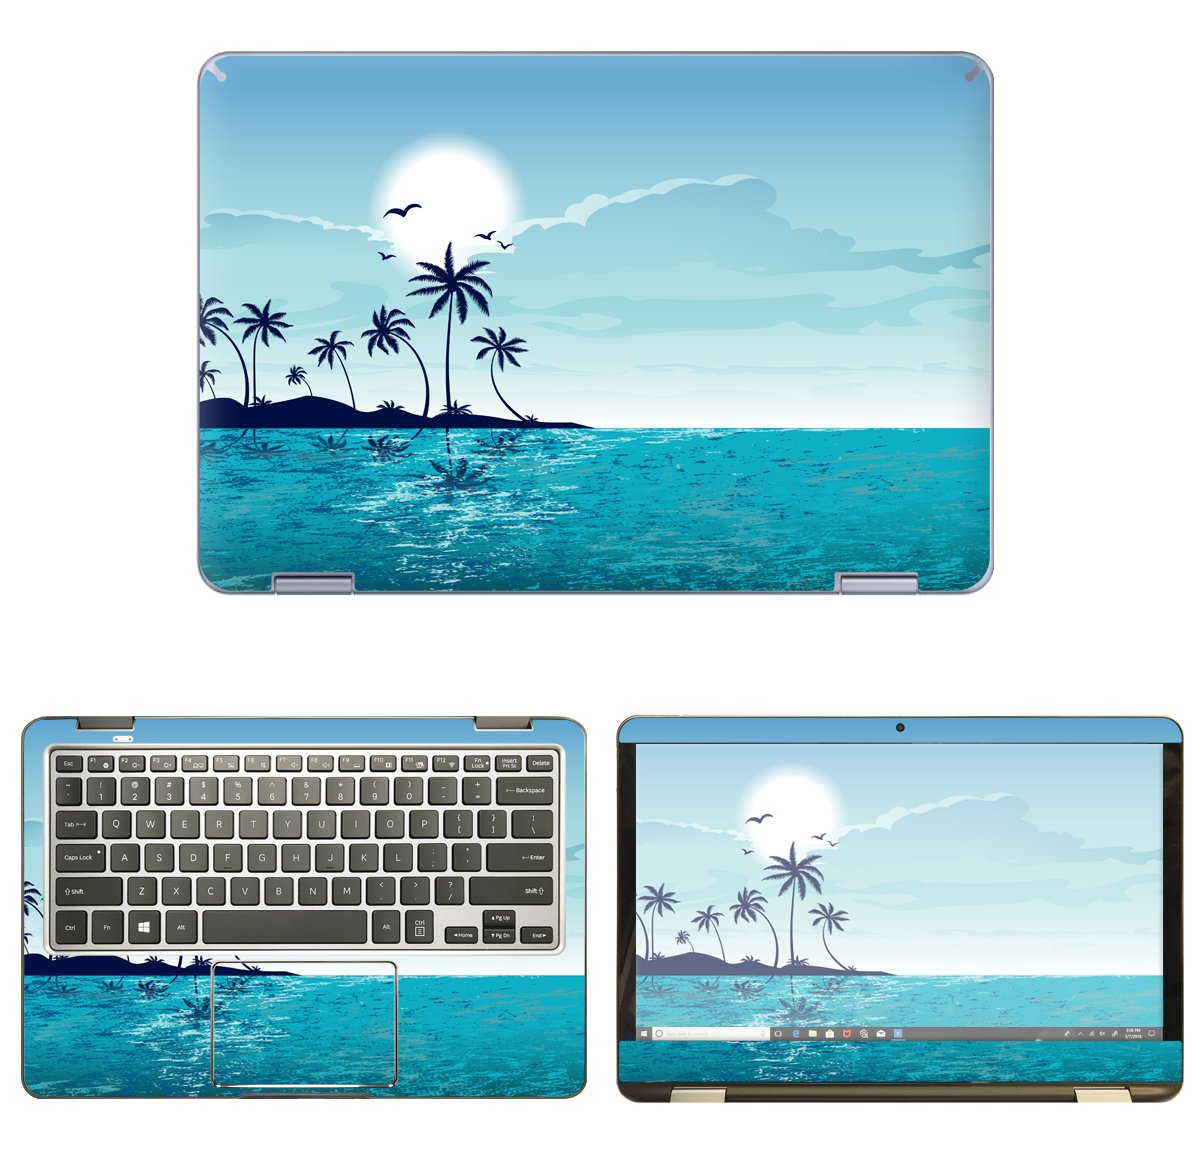 decalrus - Protective Decal Beach Skin Sticker for Samsung Notebook 7 Spin NP730QAA (13.3'' Screen) case Cover wrap SAntbk7_np730qaa-96 by decalrus (Image #1)